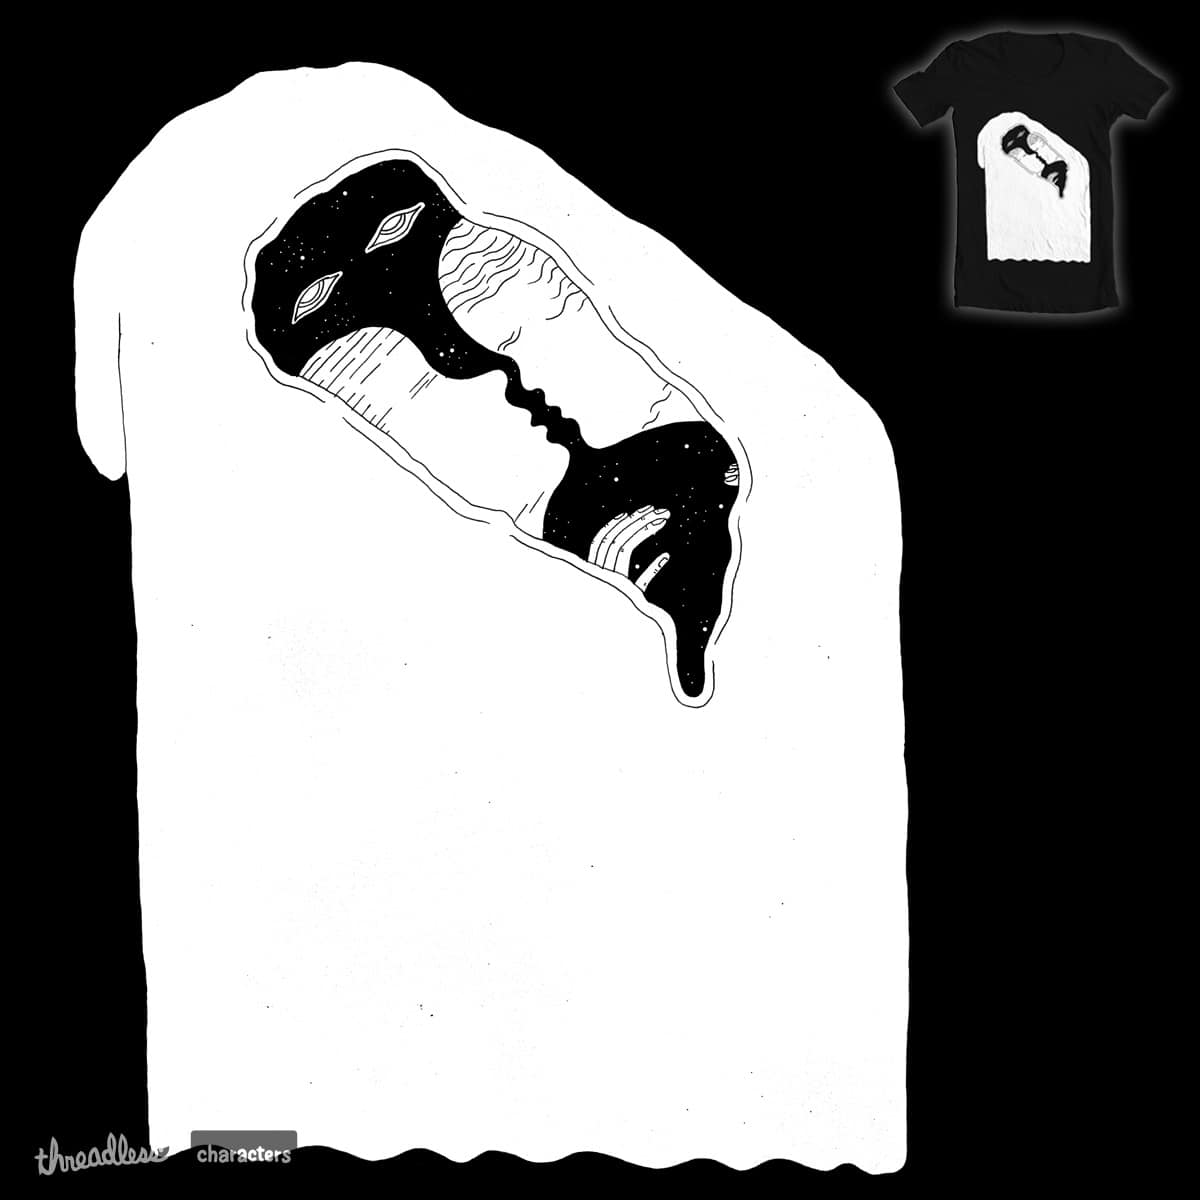 The Night by Rollwuerste on Threadless